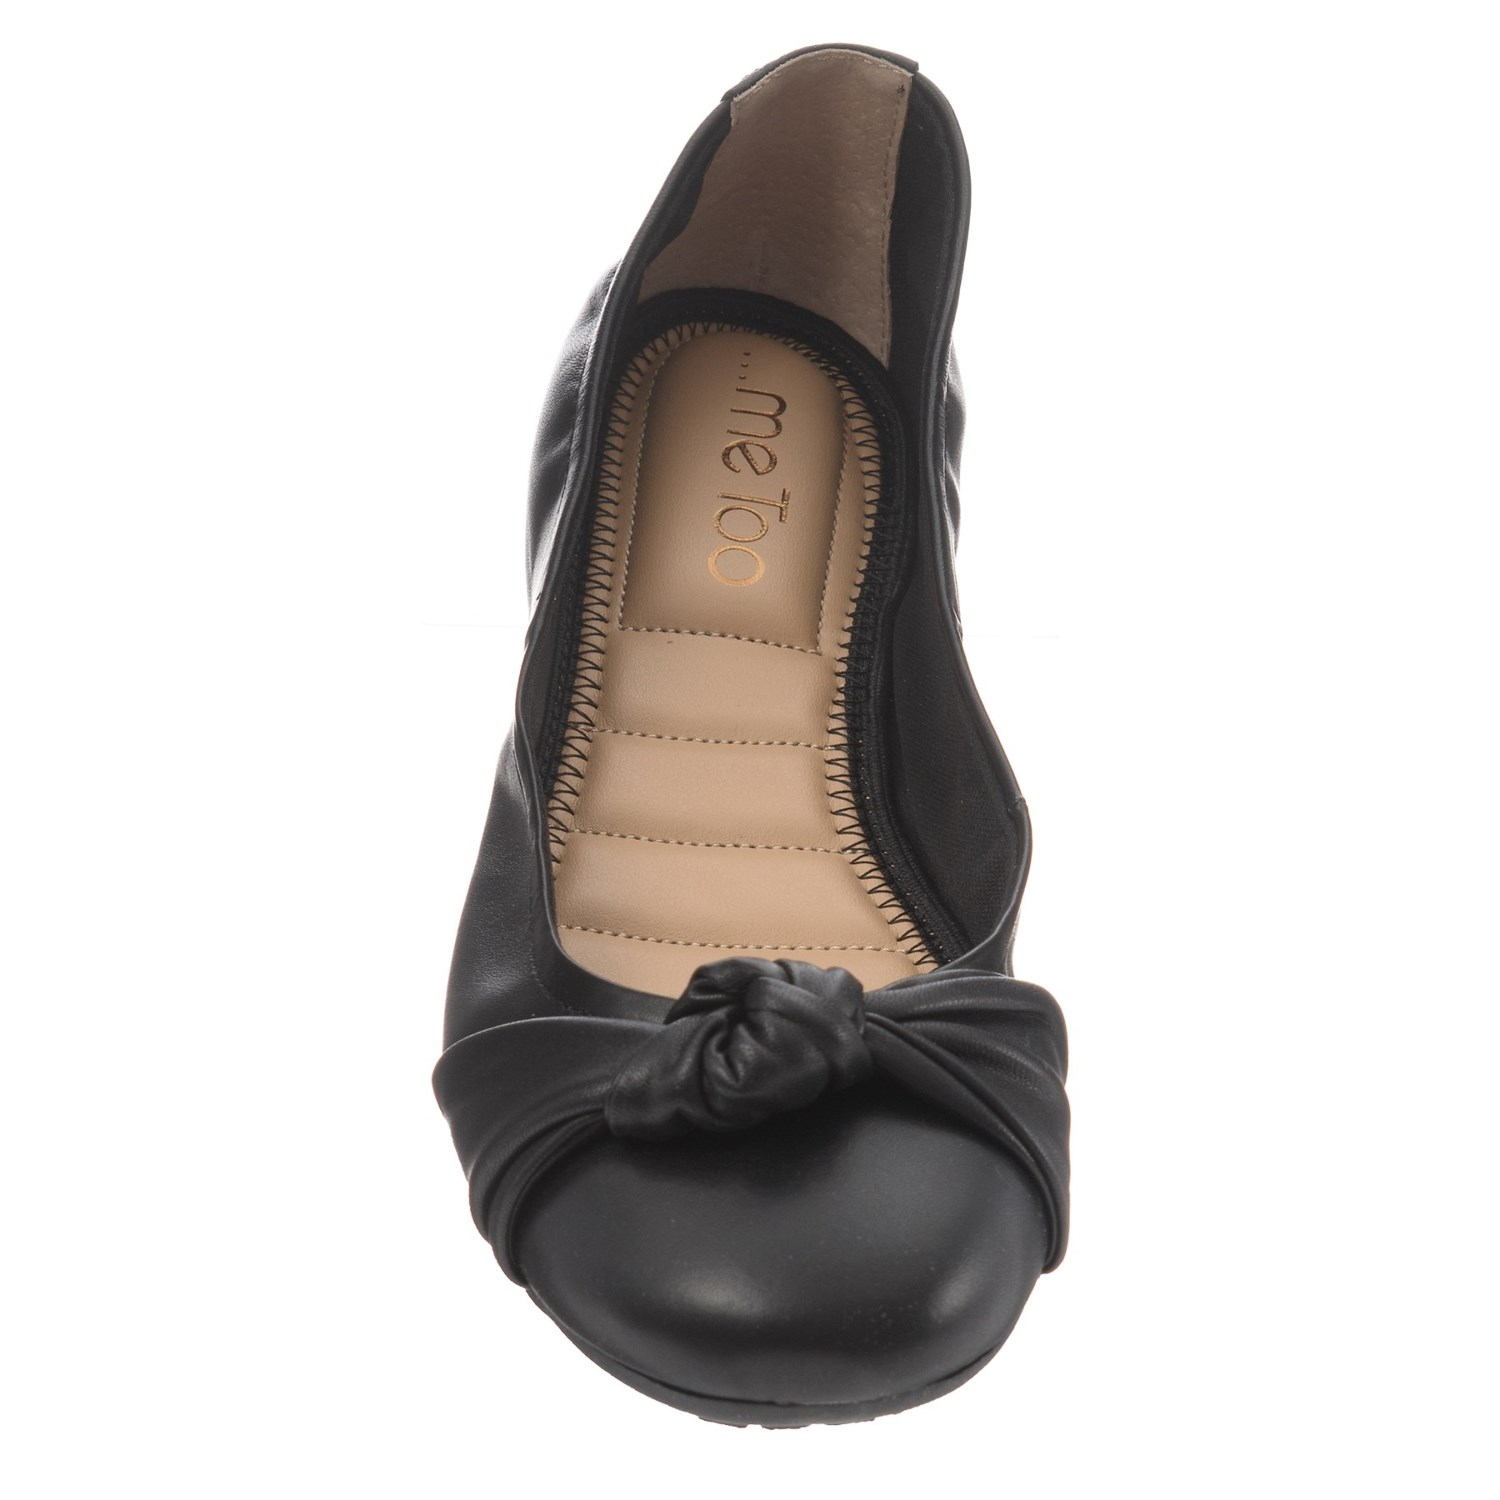 3c3ae9c410 Me Too Jaci Ballet Flats (For Women) - Save 80%